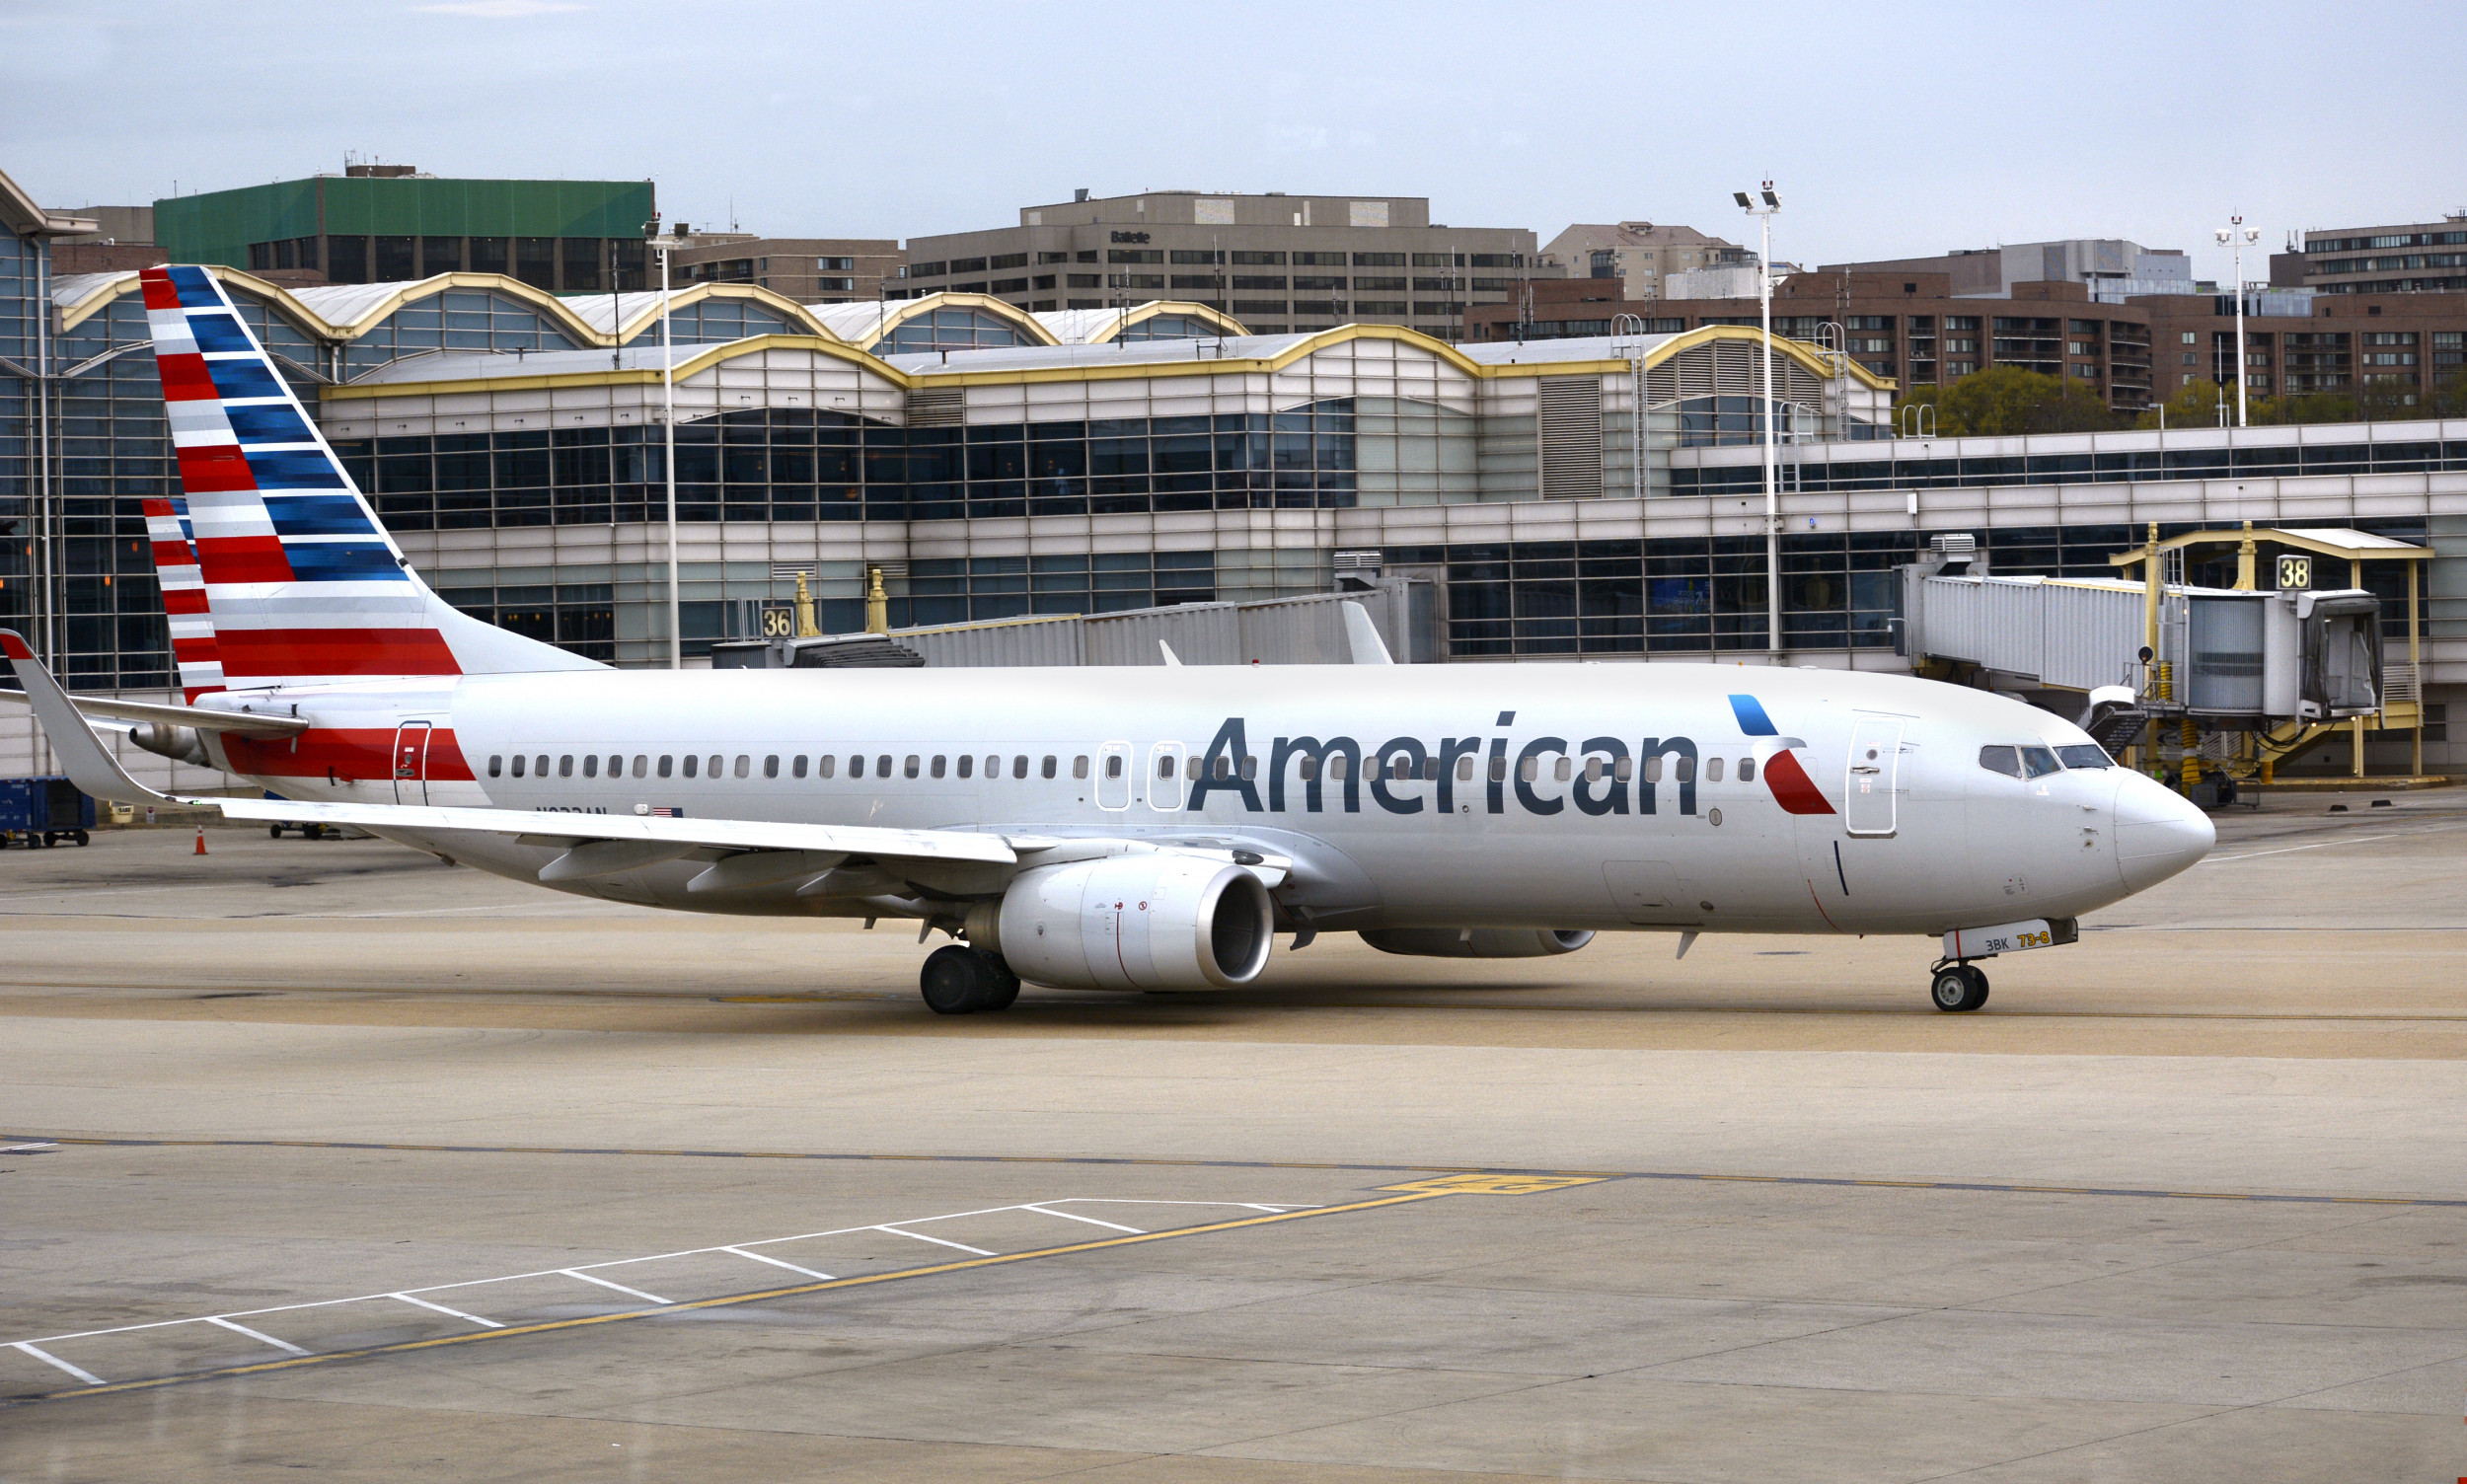 Woman Accused of Punching American Airlines Flight Attendant Over Garbage Is Given Travel Curbs